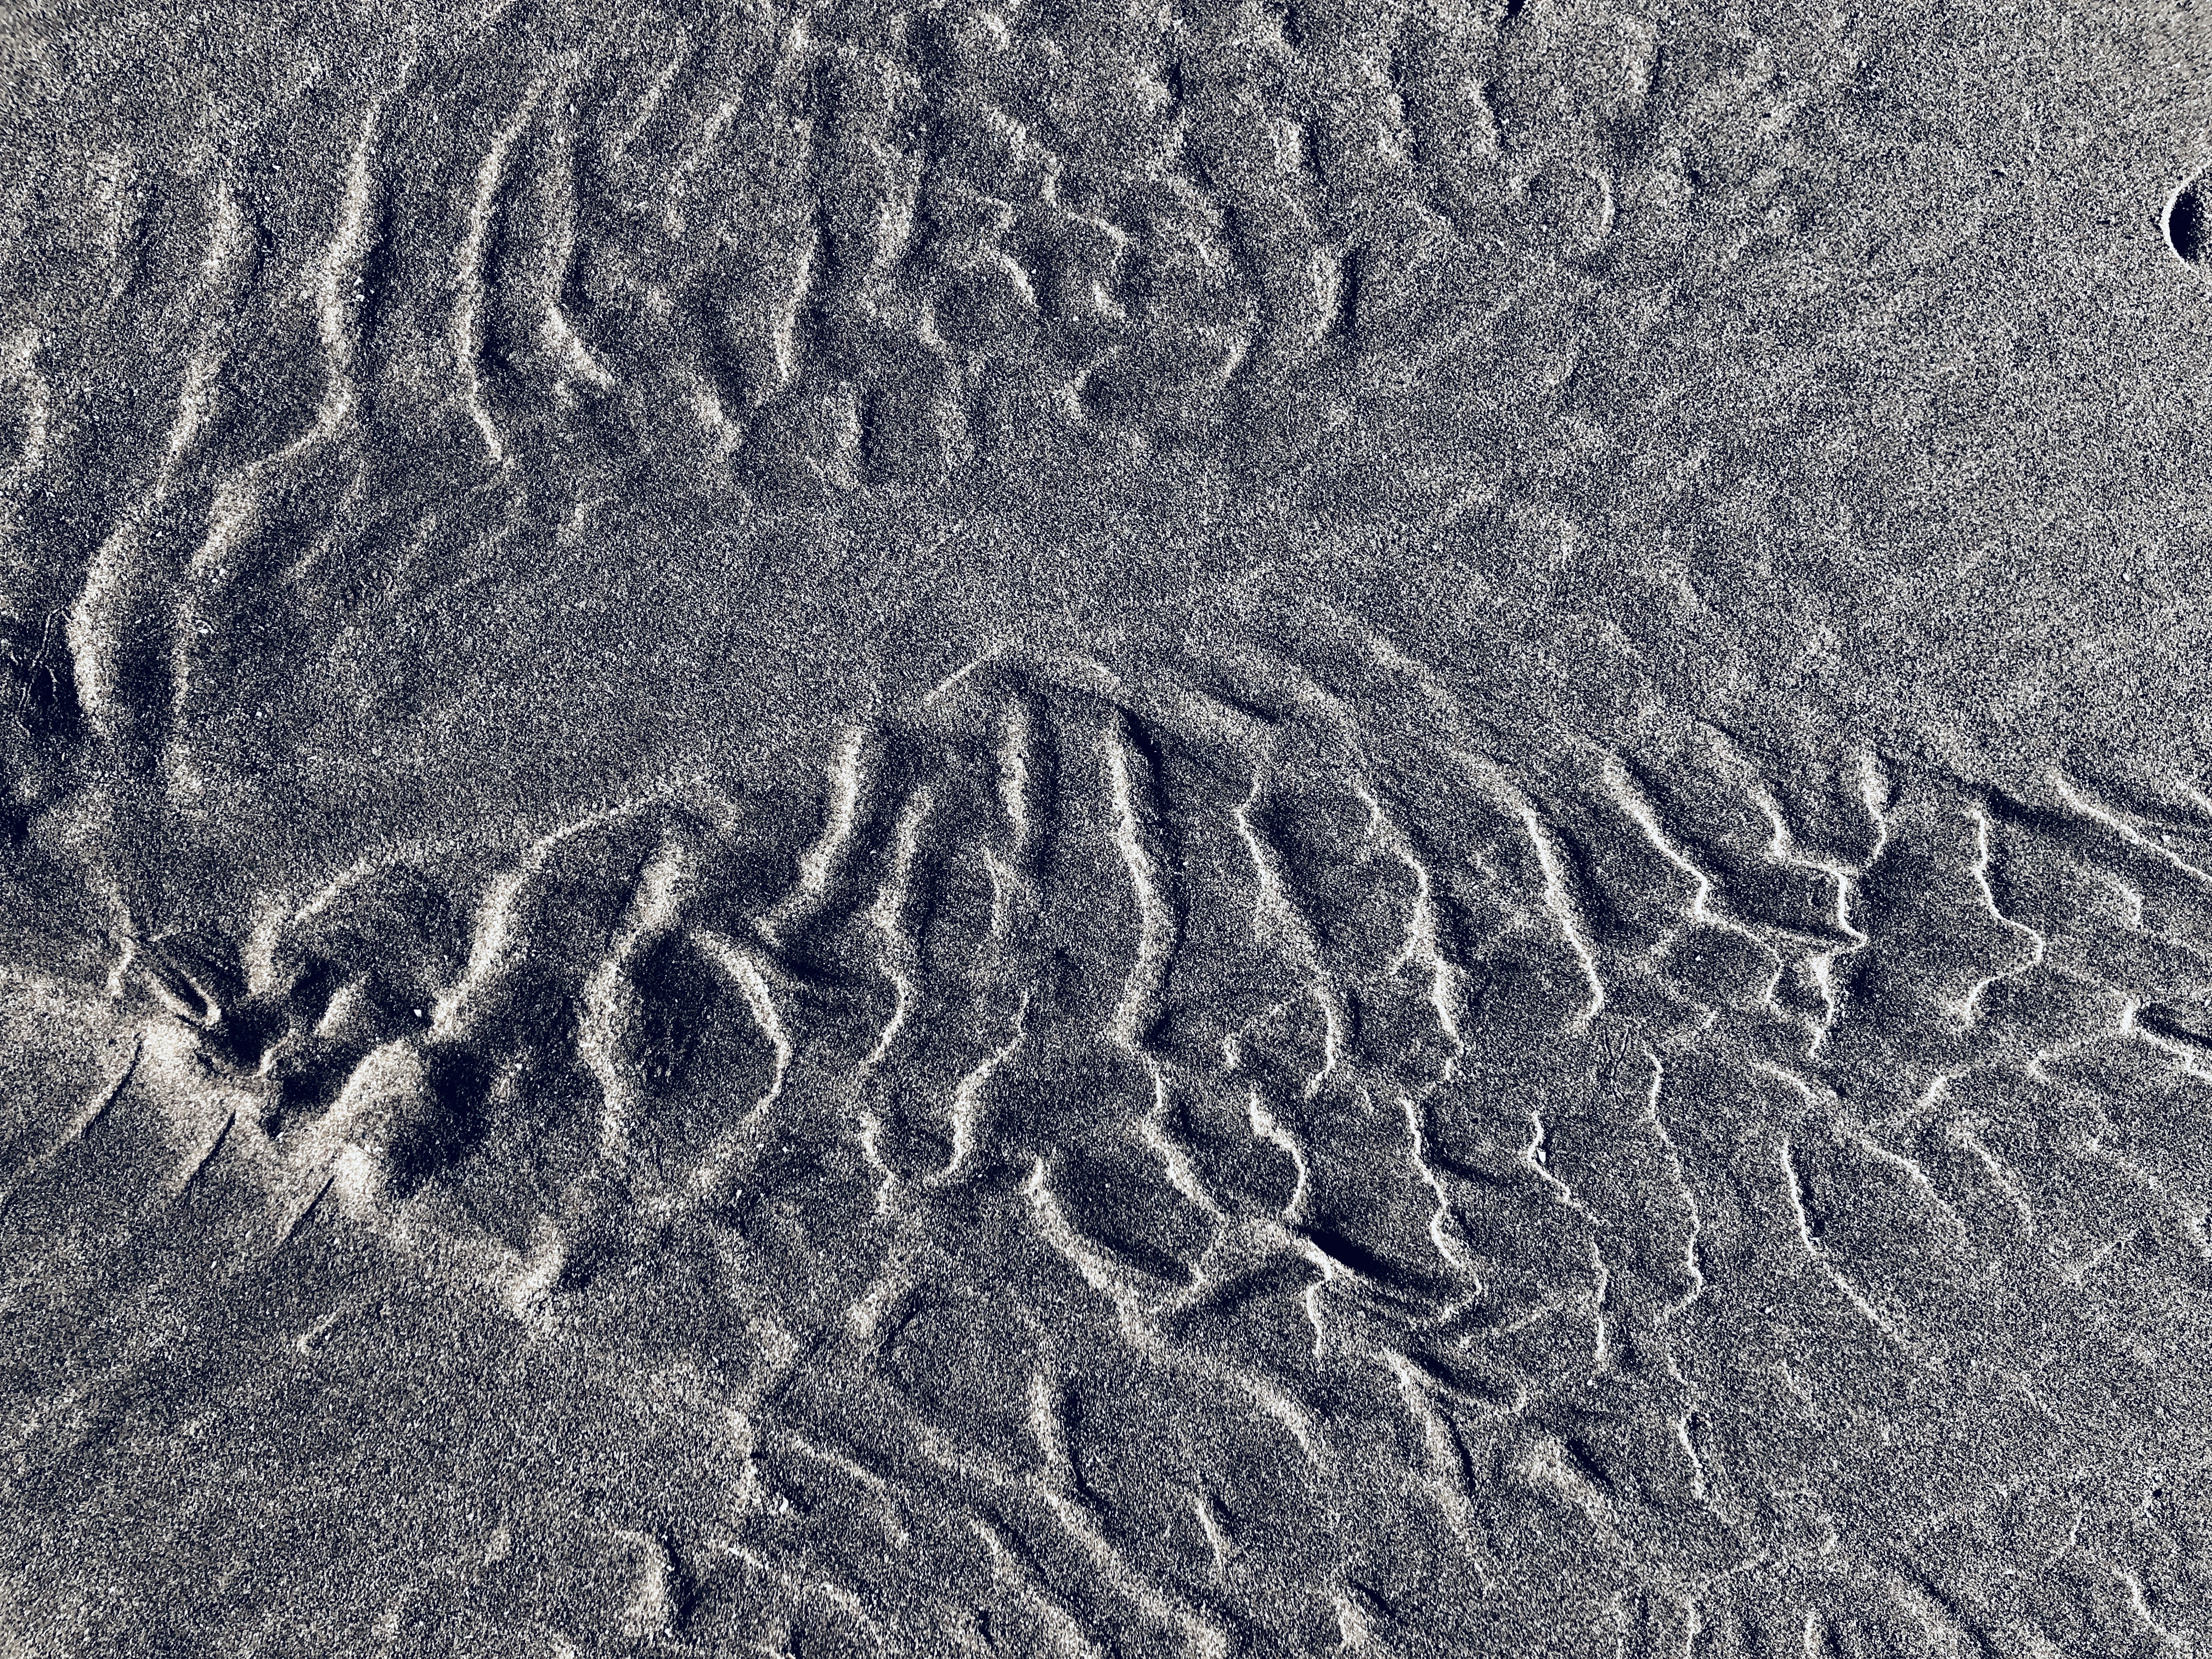 Sands made by tides.